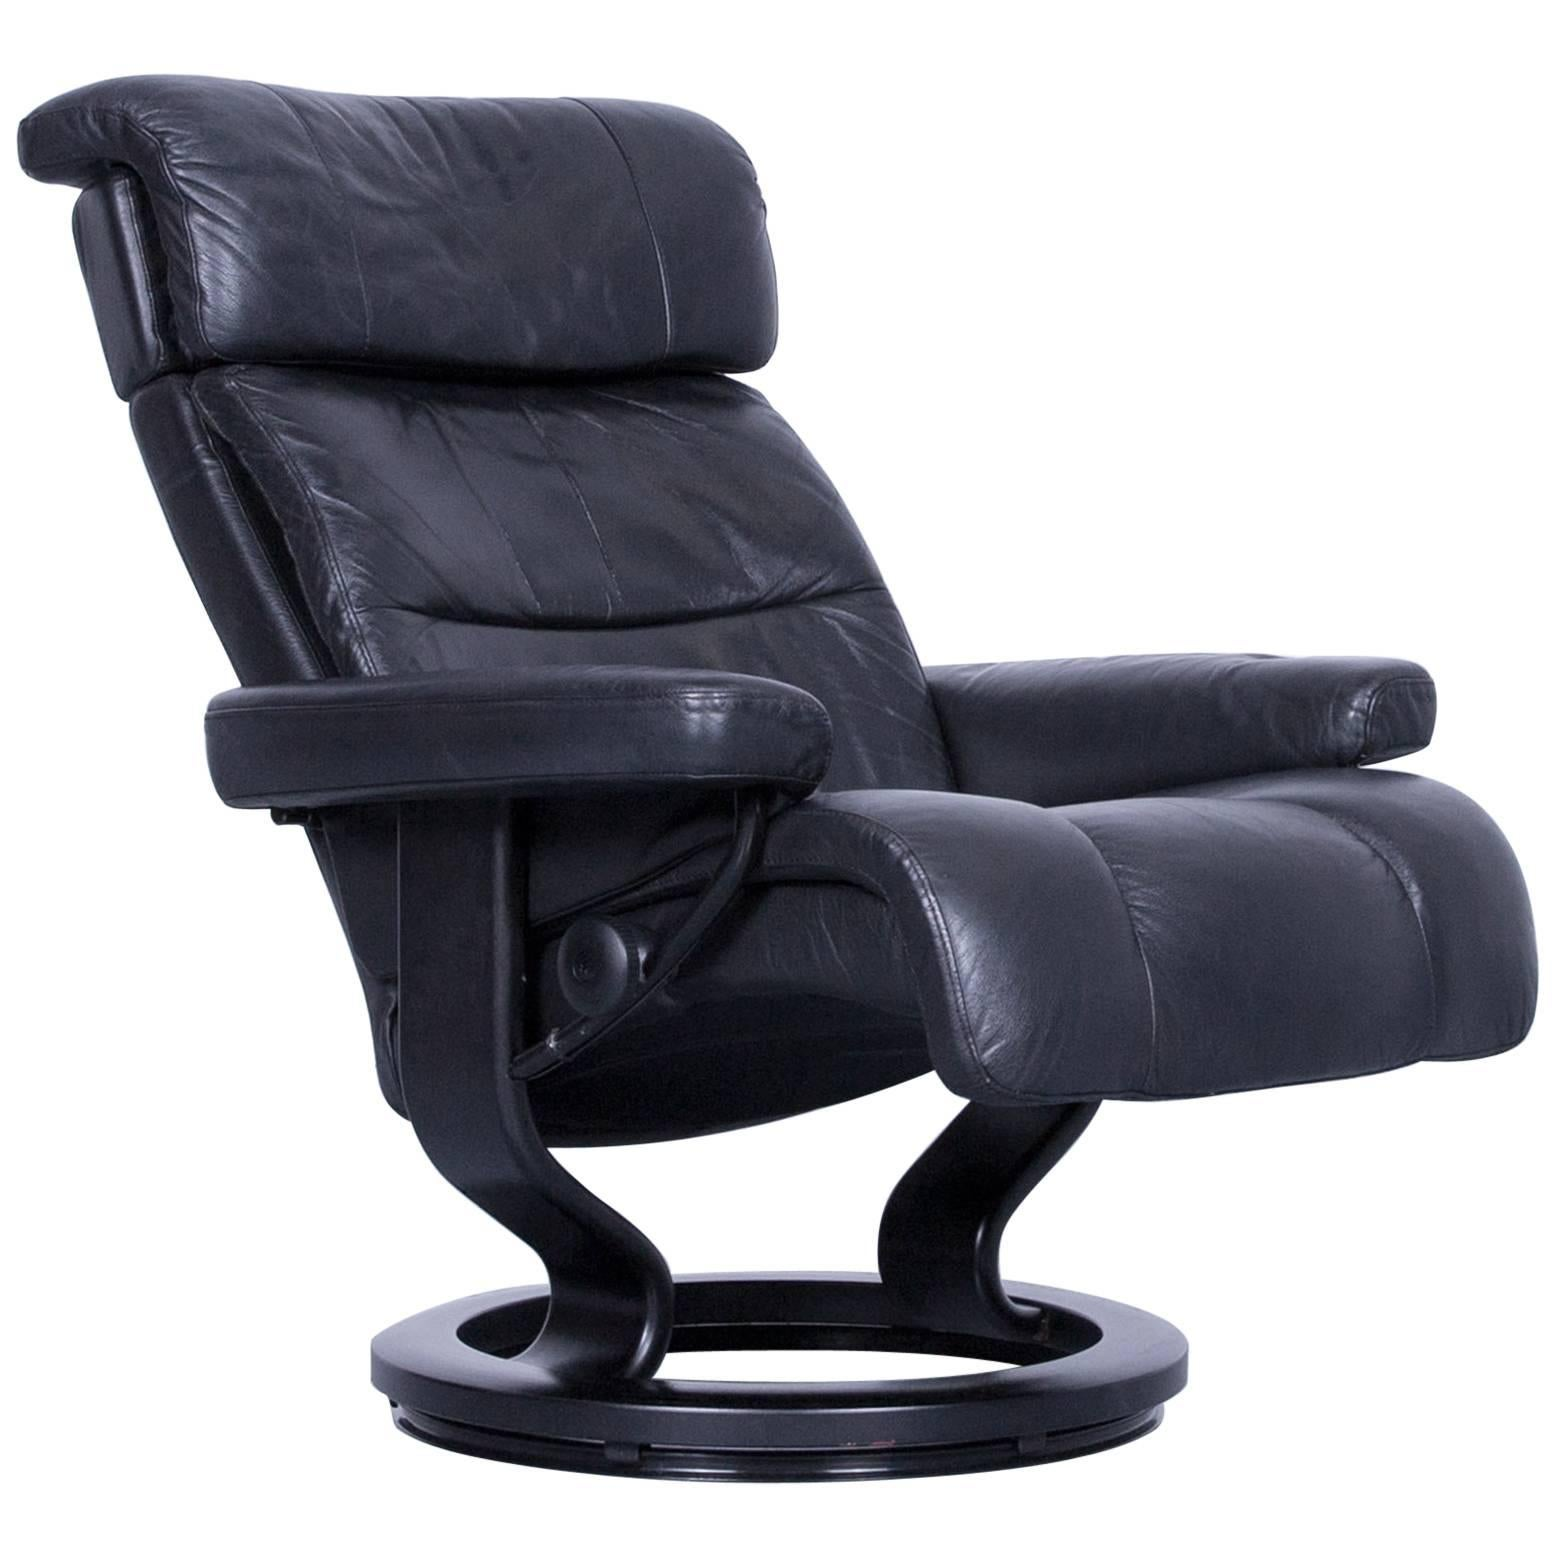 Stressless Relax Armchair Black Leather Relax Recliner TV Chair Wood For  Sale